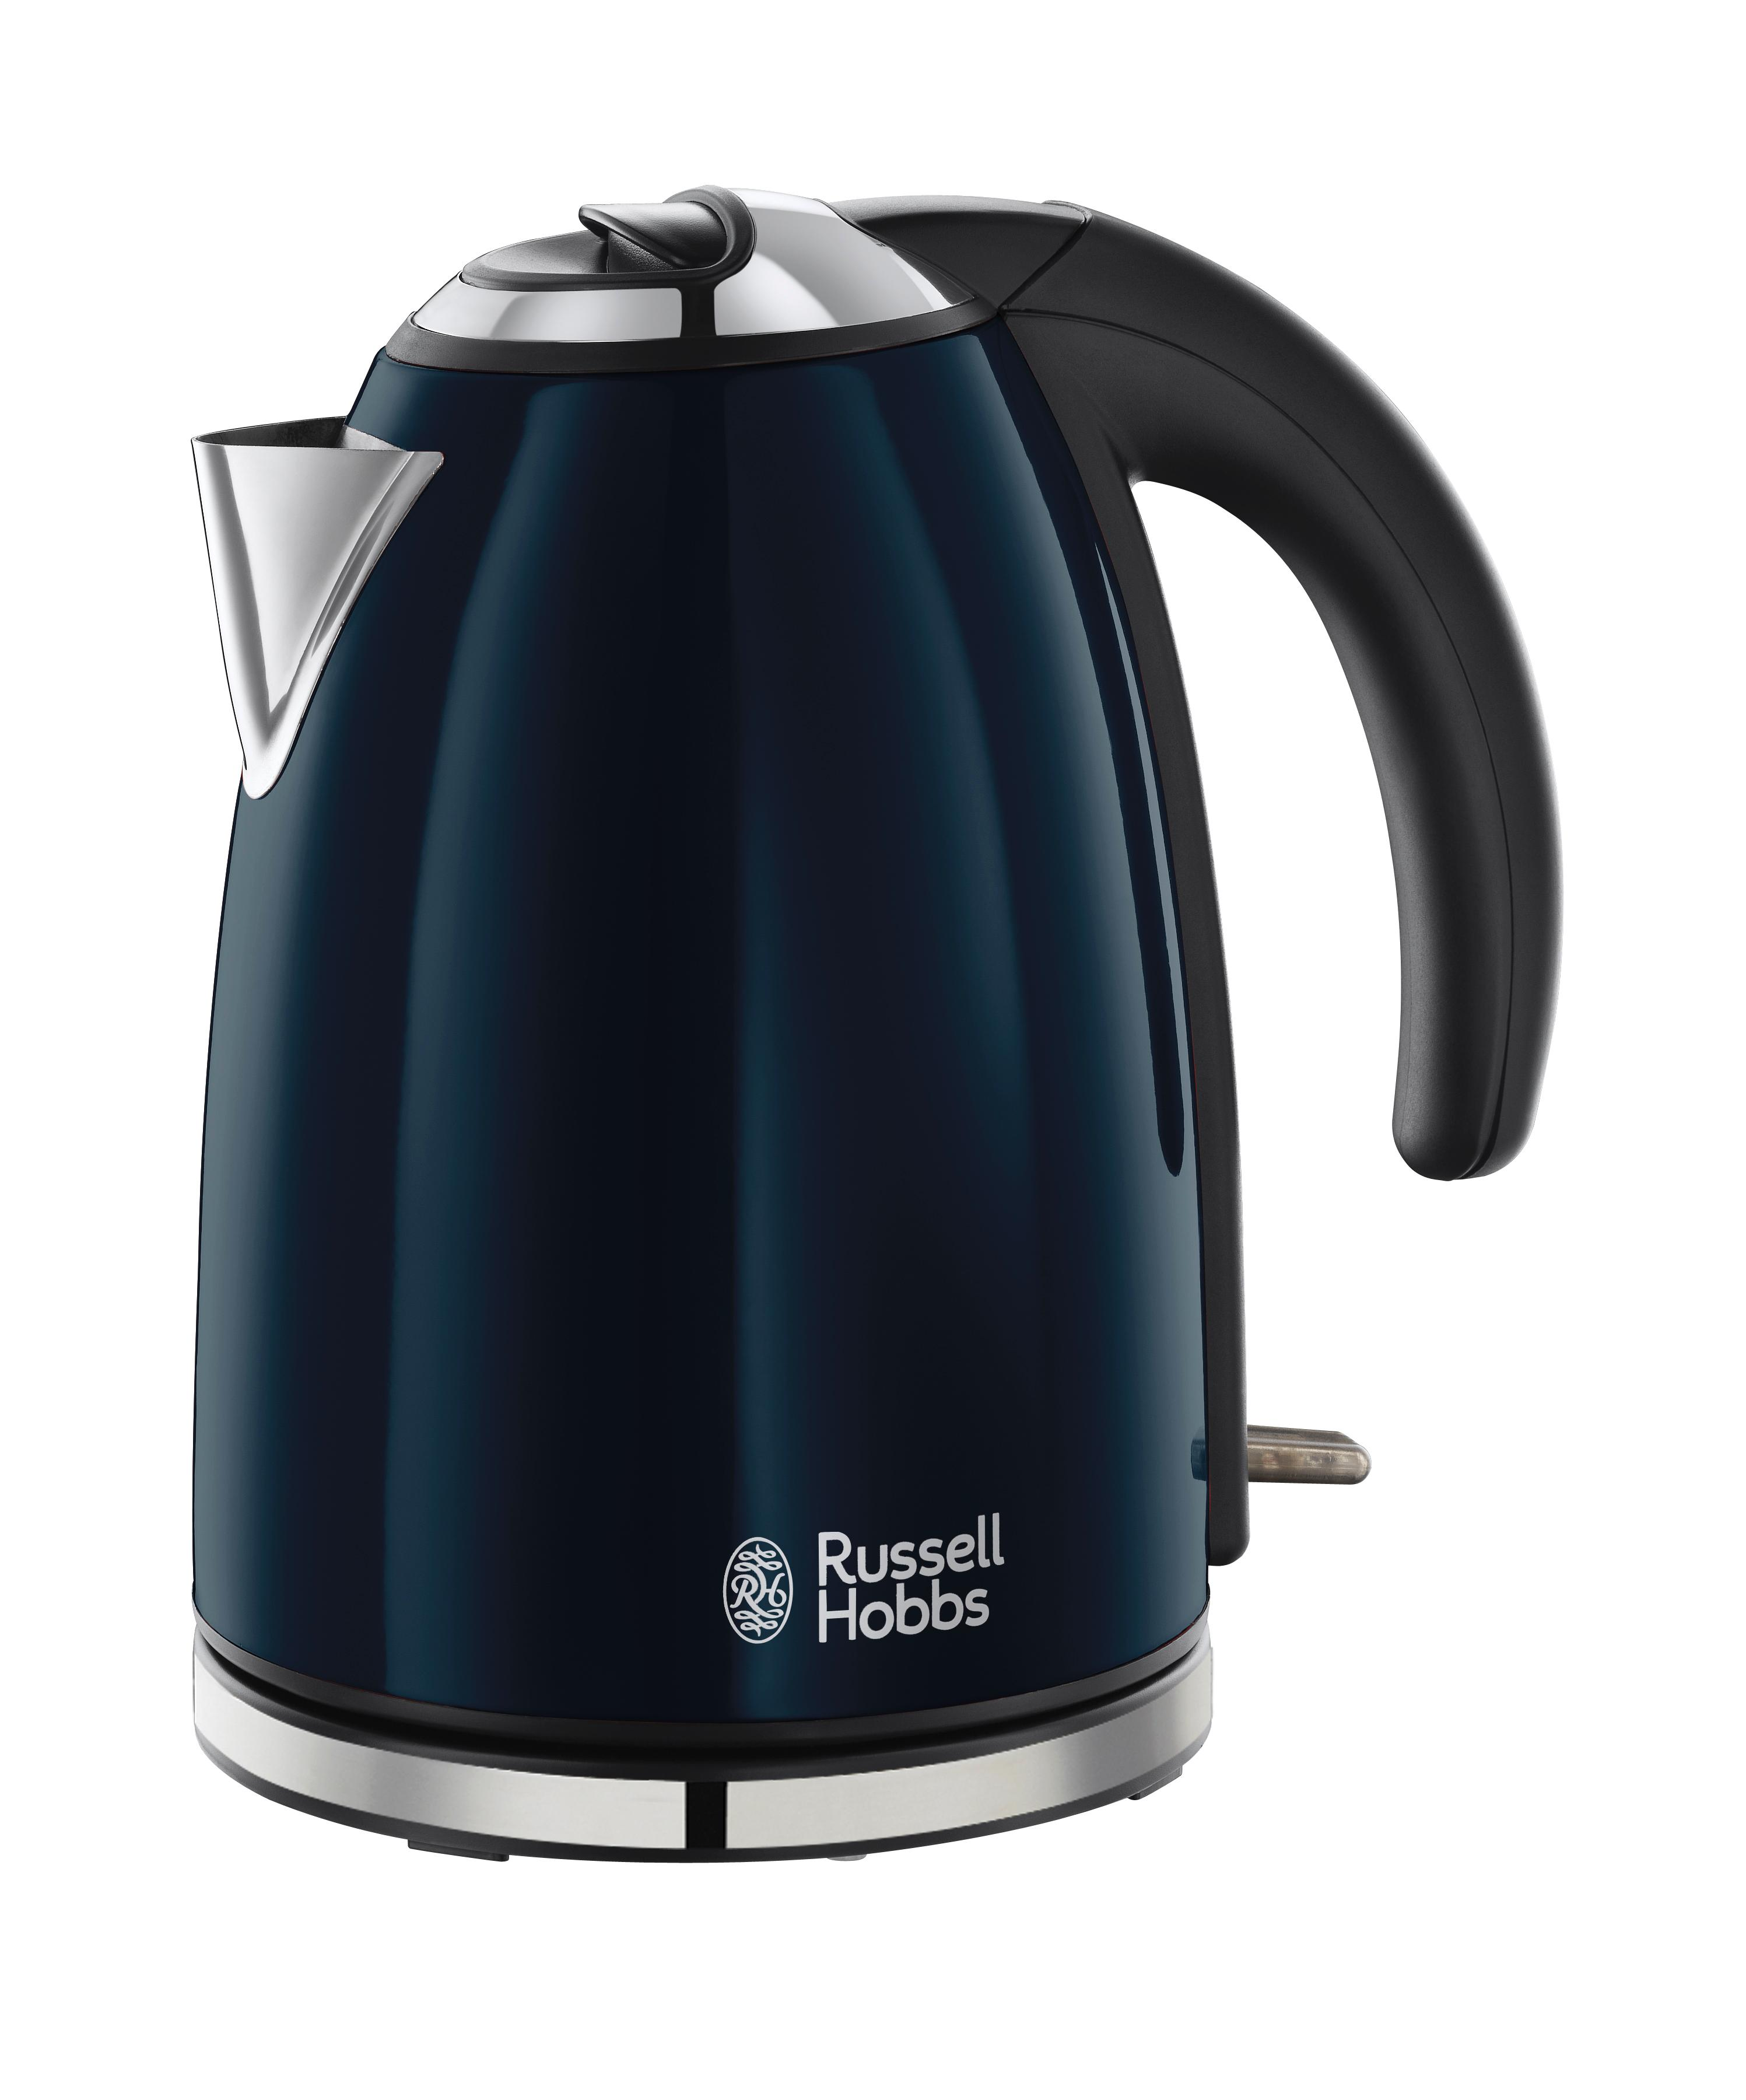 russel hobbs kettle and toaster russell hobbs. Black Bedroom Furniture Sets. Home Design Ideas